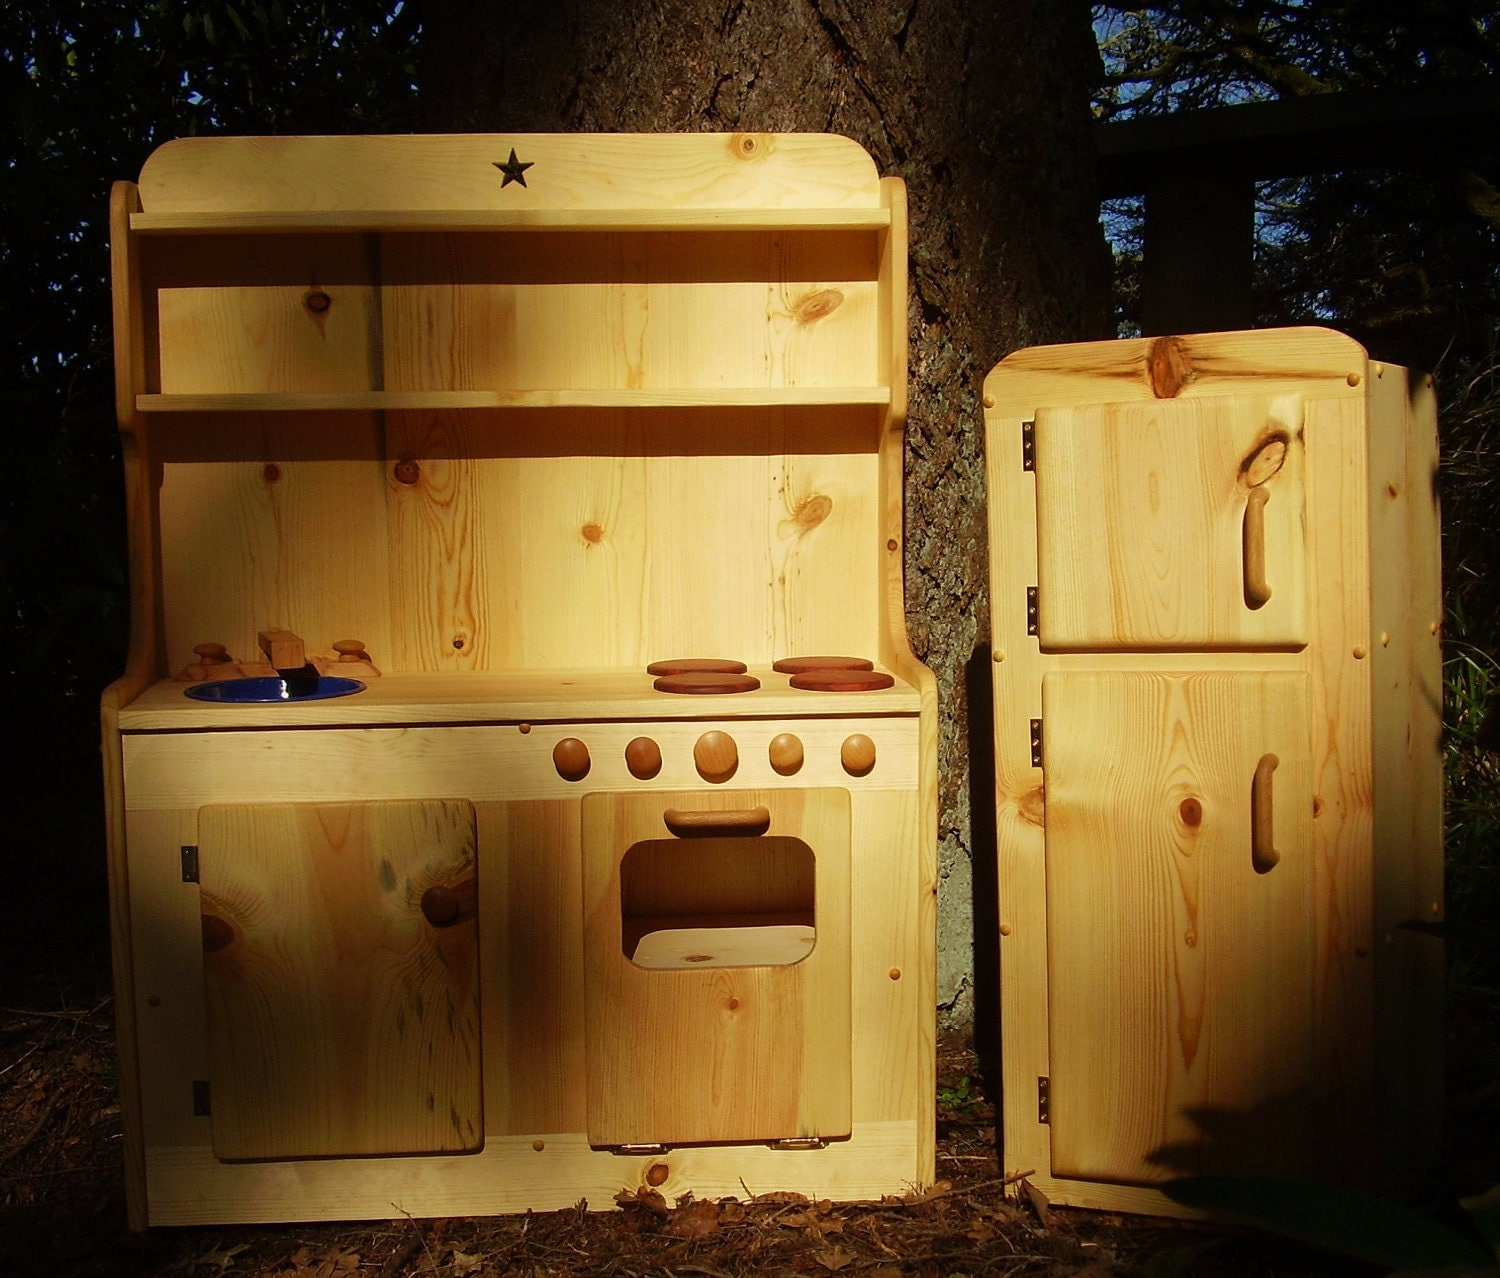 Wooden Play Kitchen set by Heartwood natural toys